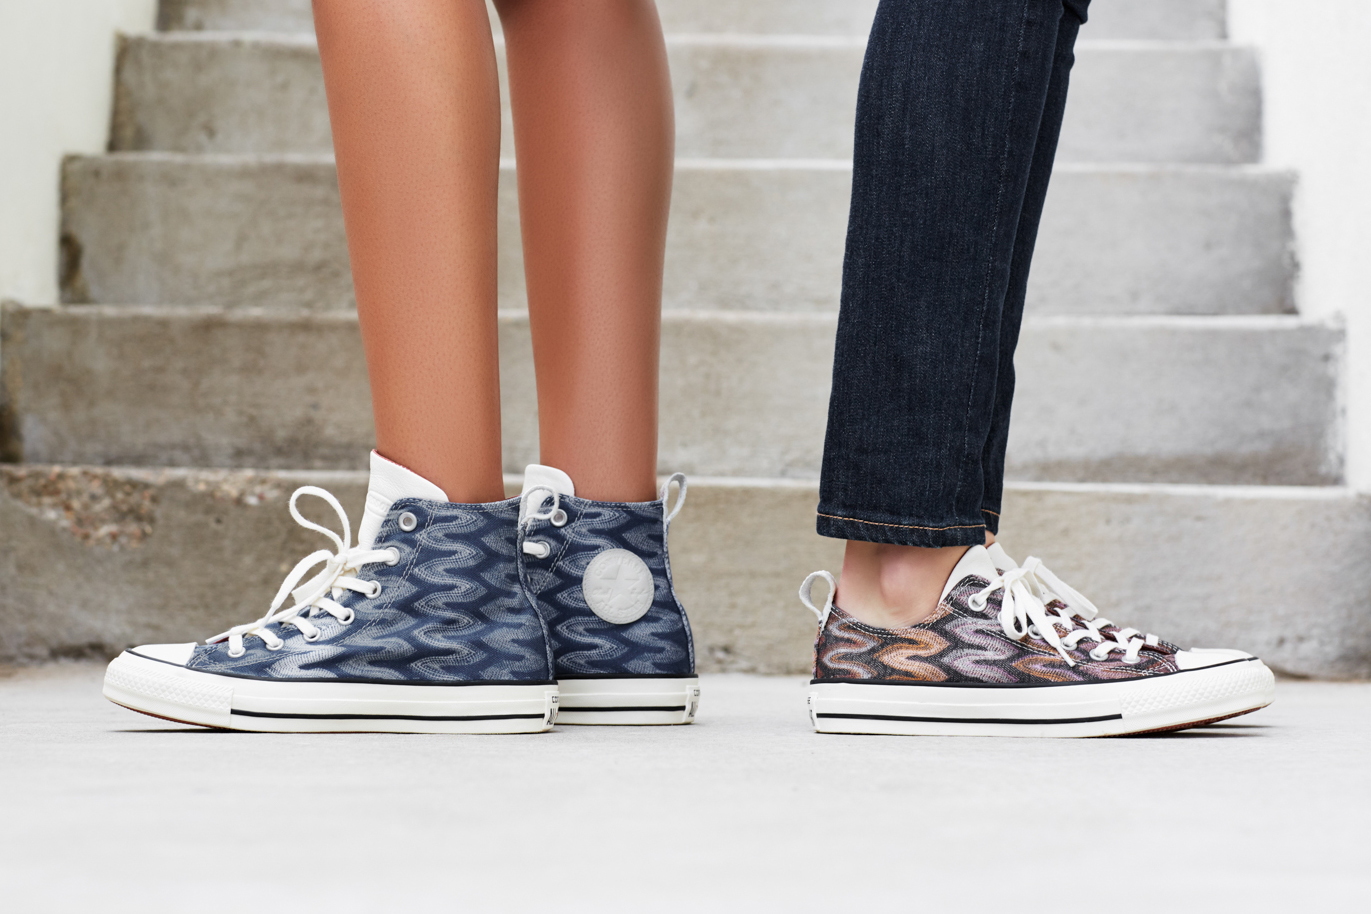 Converse x Missoni Women's collection